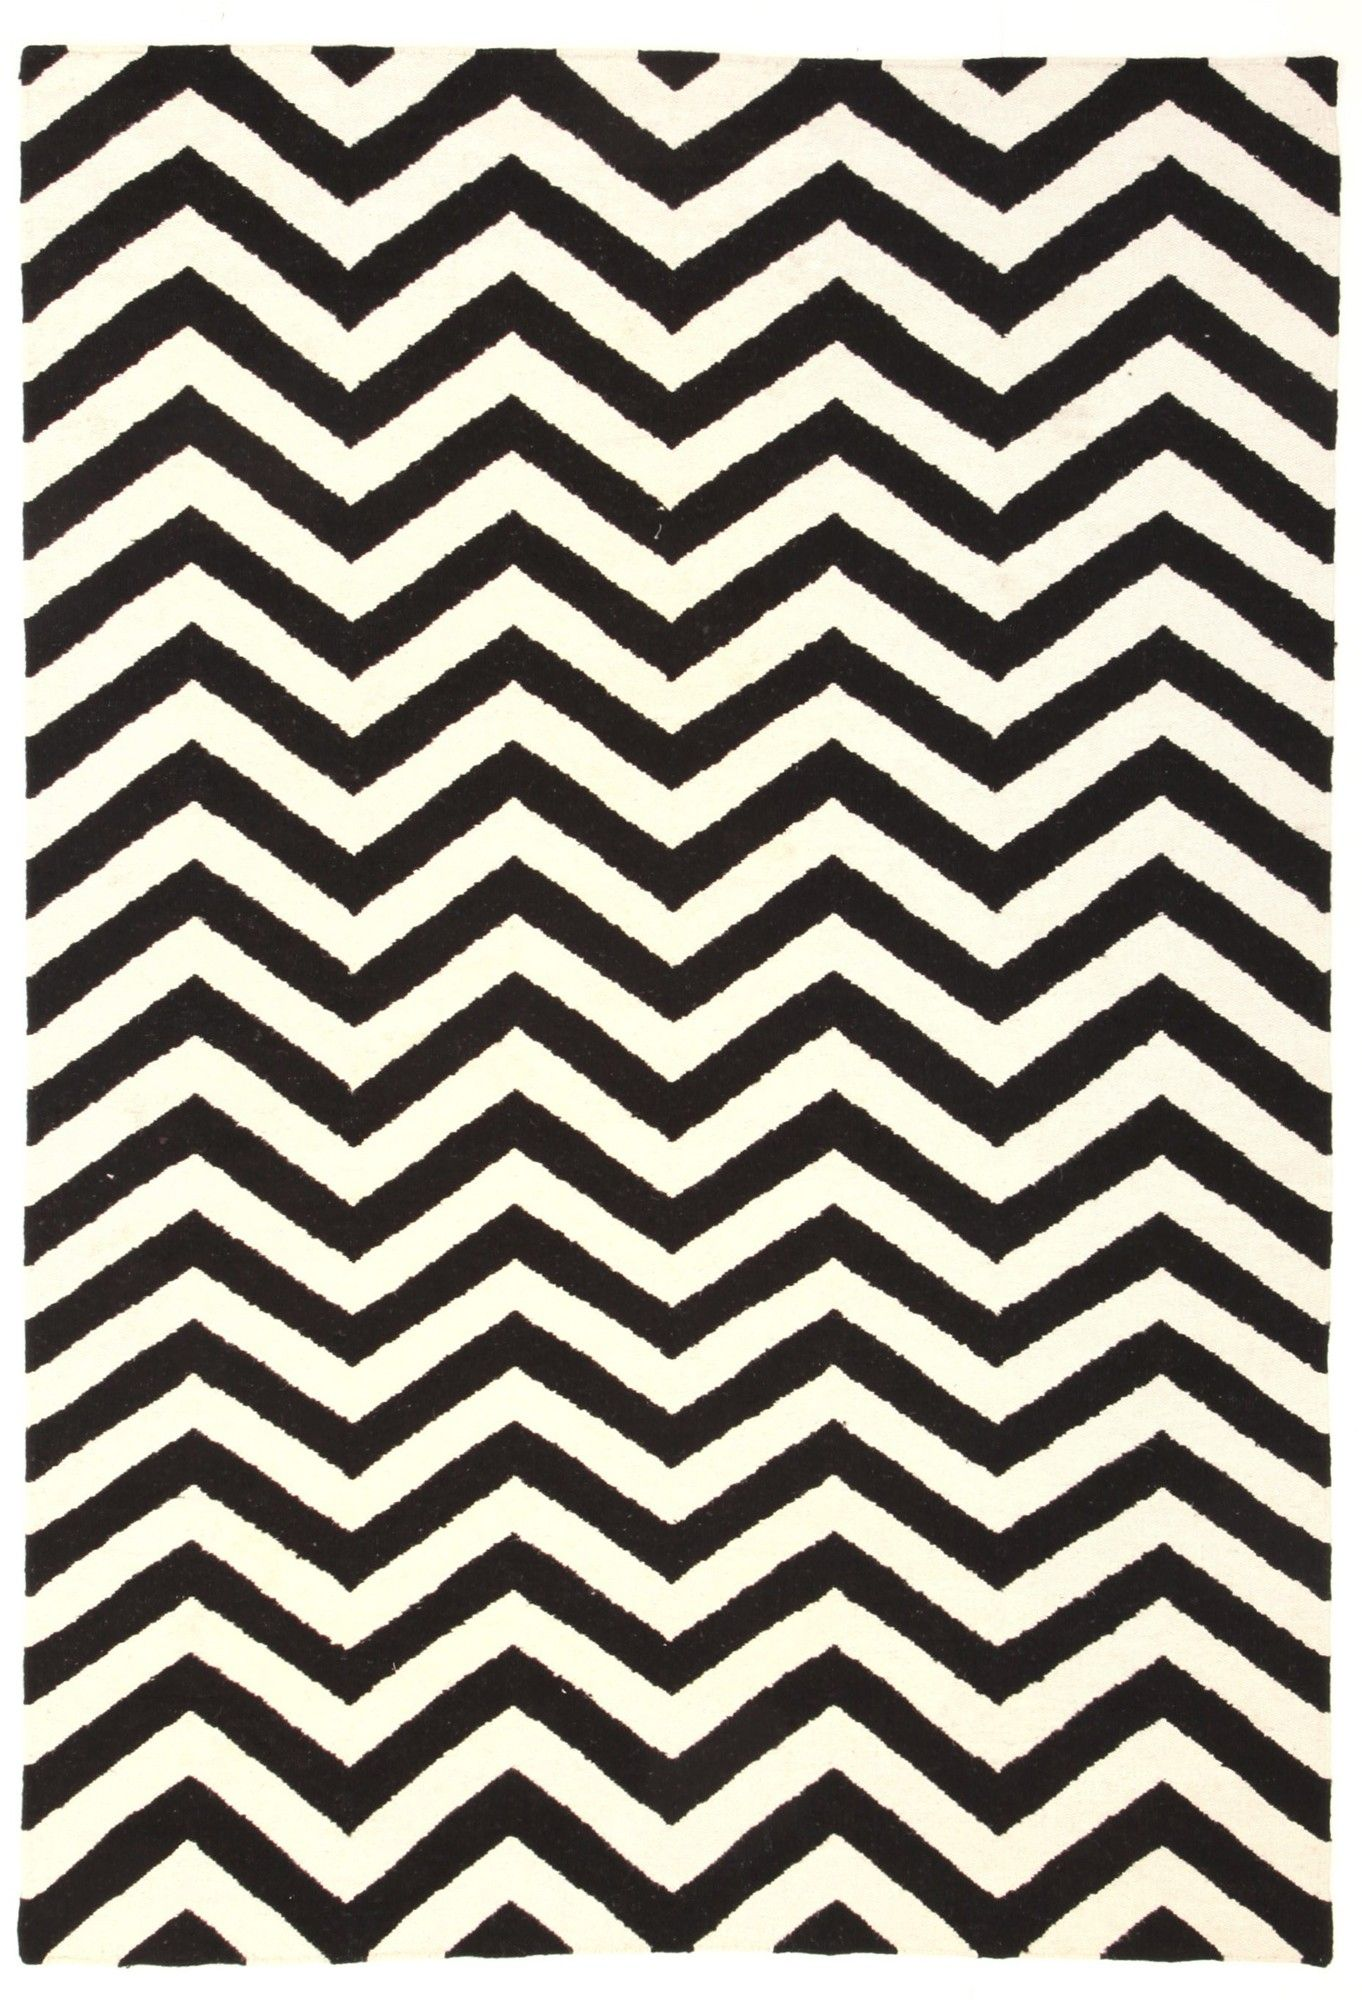 For Some Reason Chevron Rugs Keep Making Us Think Of